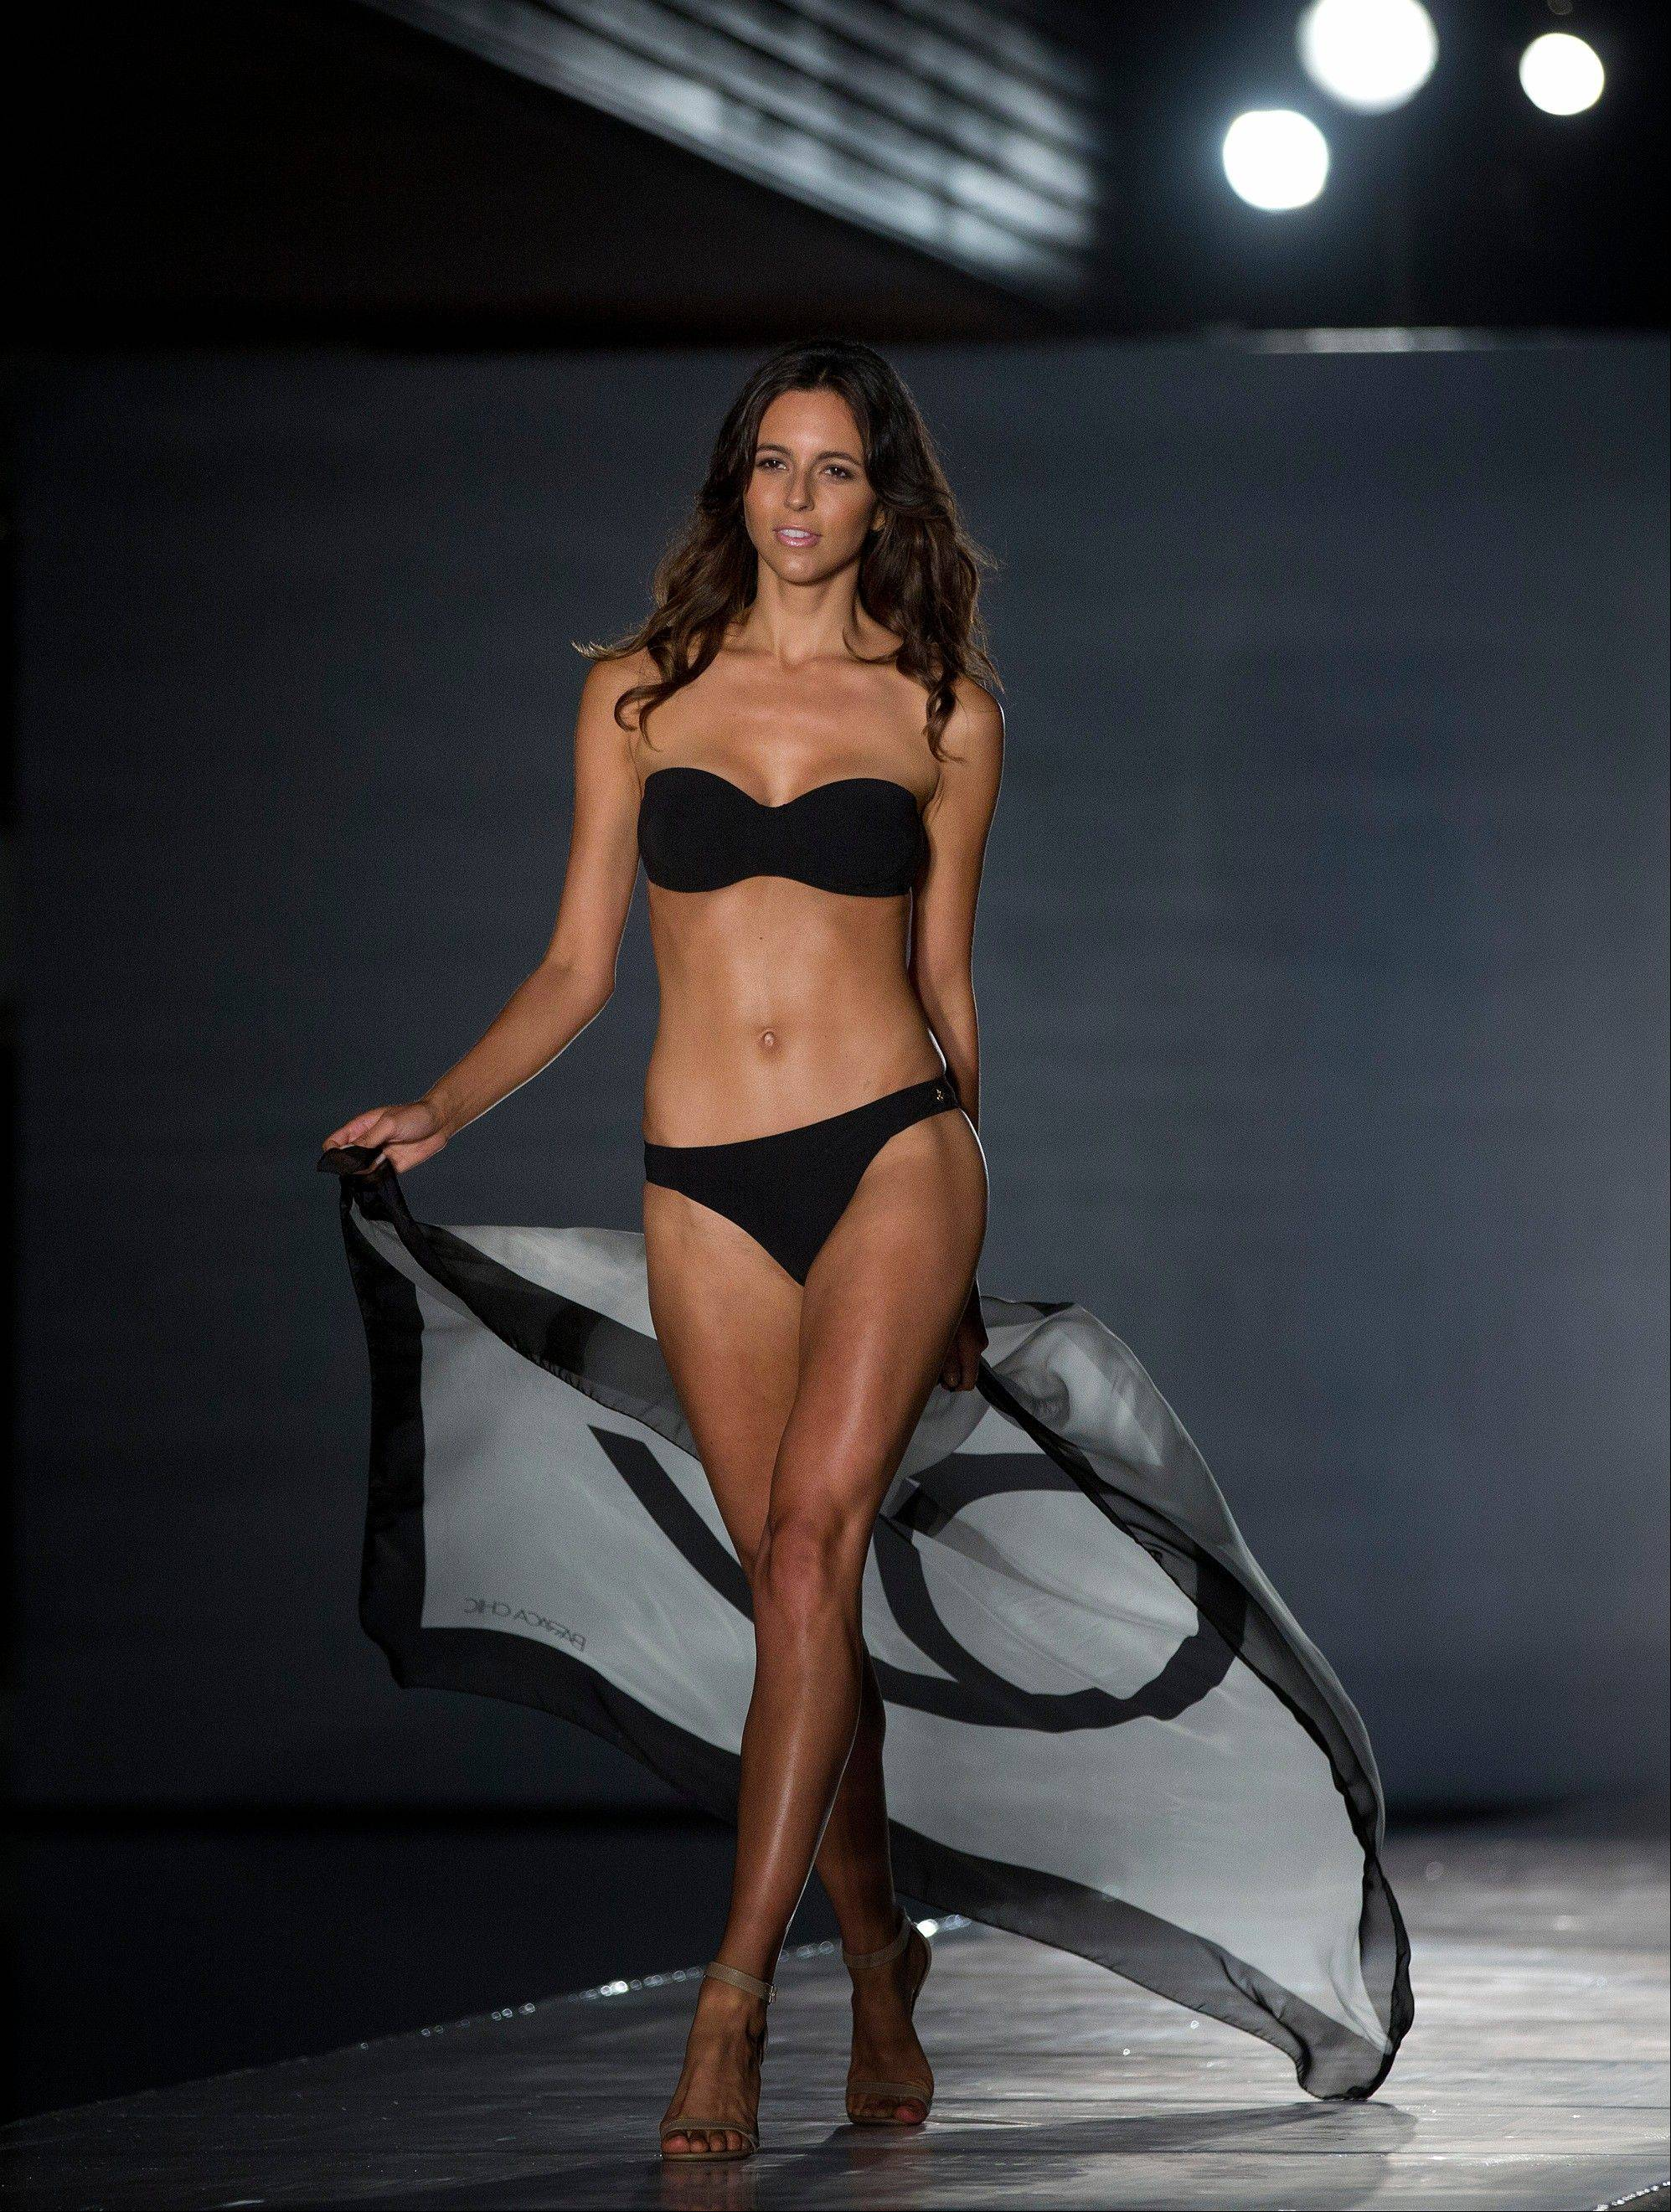 A model walks the runway wearing Barraca Chic swimwearin the MBFW Swim fashion show in Miami Beach.